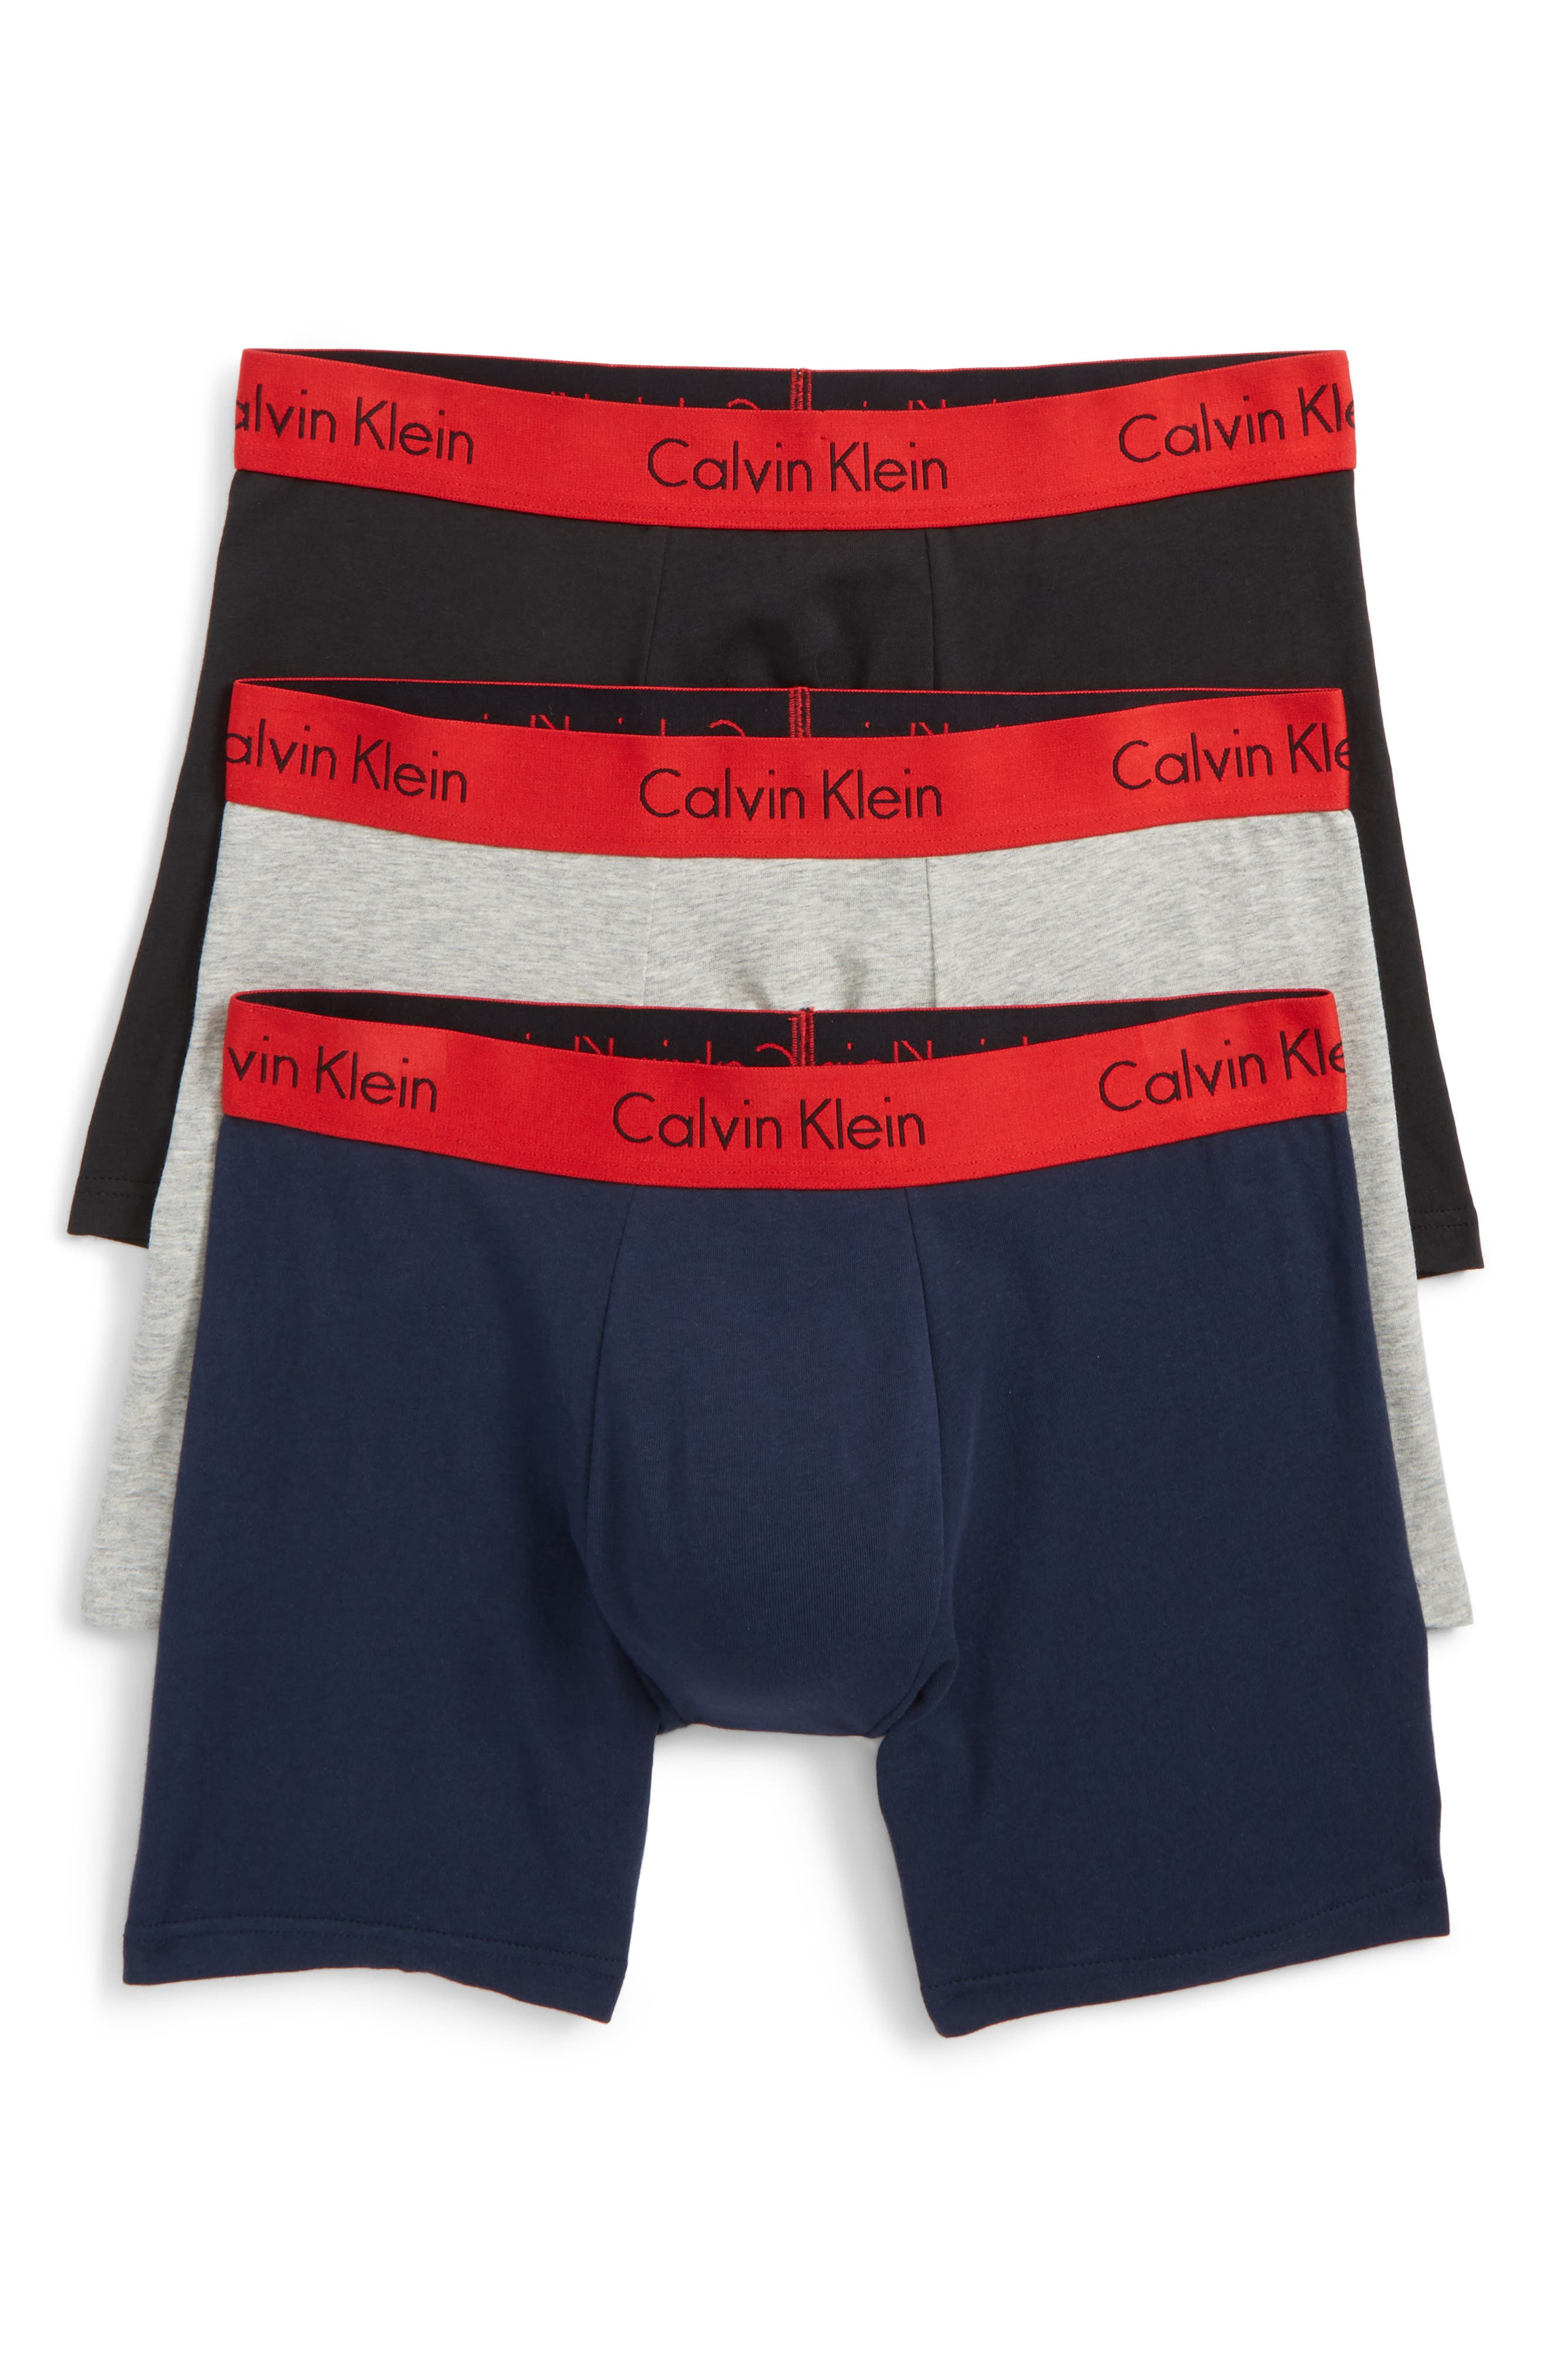 3-Pack Boxer Briefs,                             Main thumbnail 1, color,                             BLACK/ GREY/ BLUE/ RED BAND